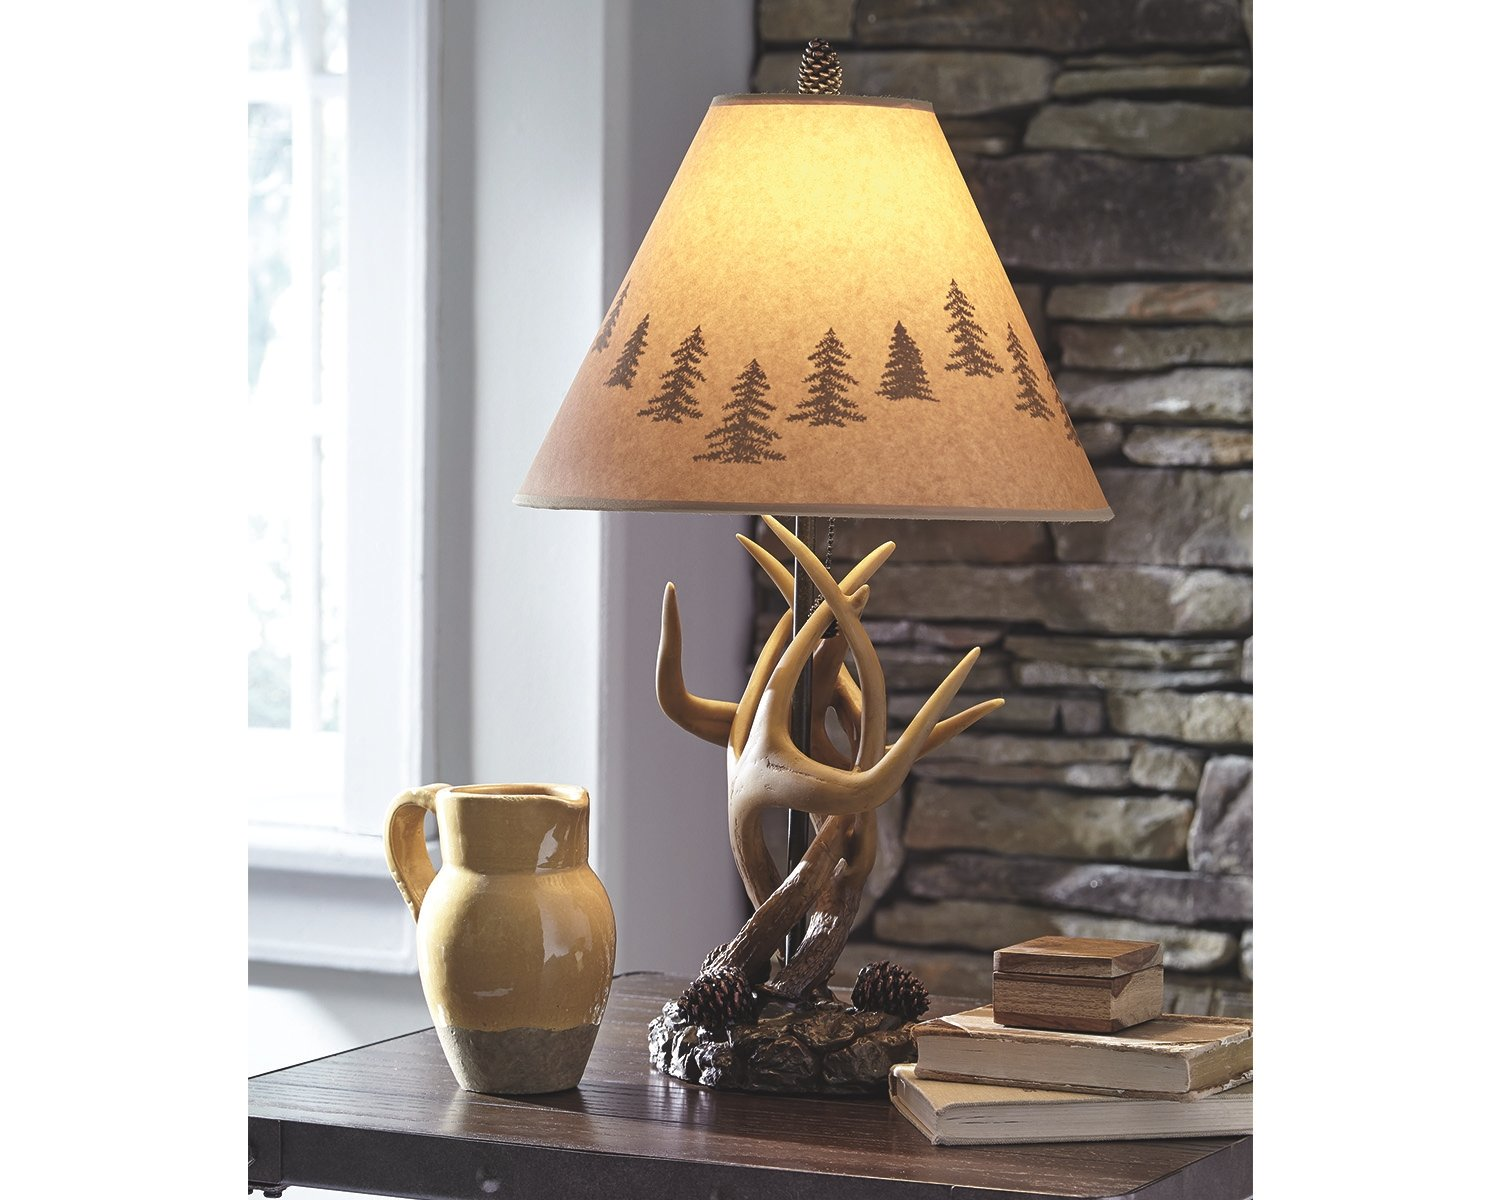 Ashley Furniture Signature Design - Derek Antler Table Lamps - Mountain Style Shades - Set of 2 - Natural Finish by Signature Design by Ashley (Image #2)